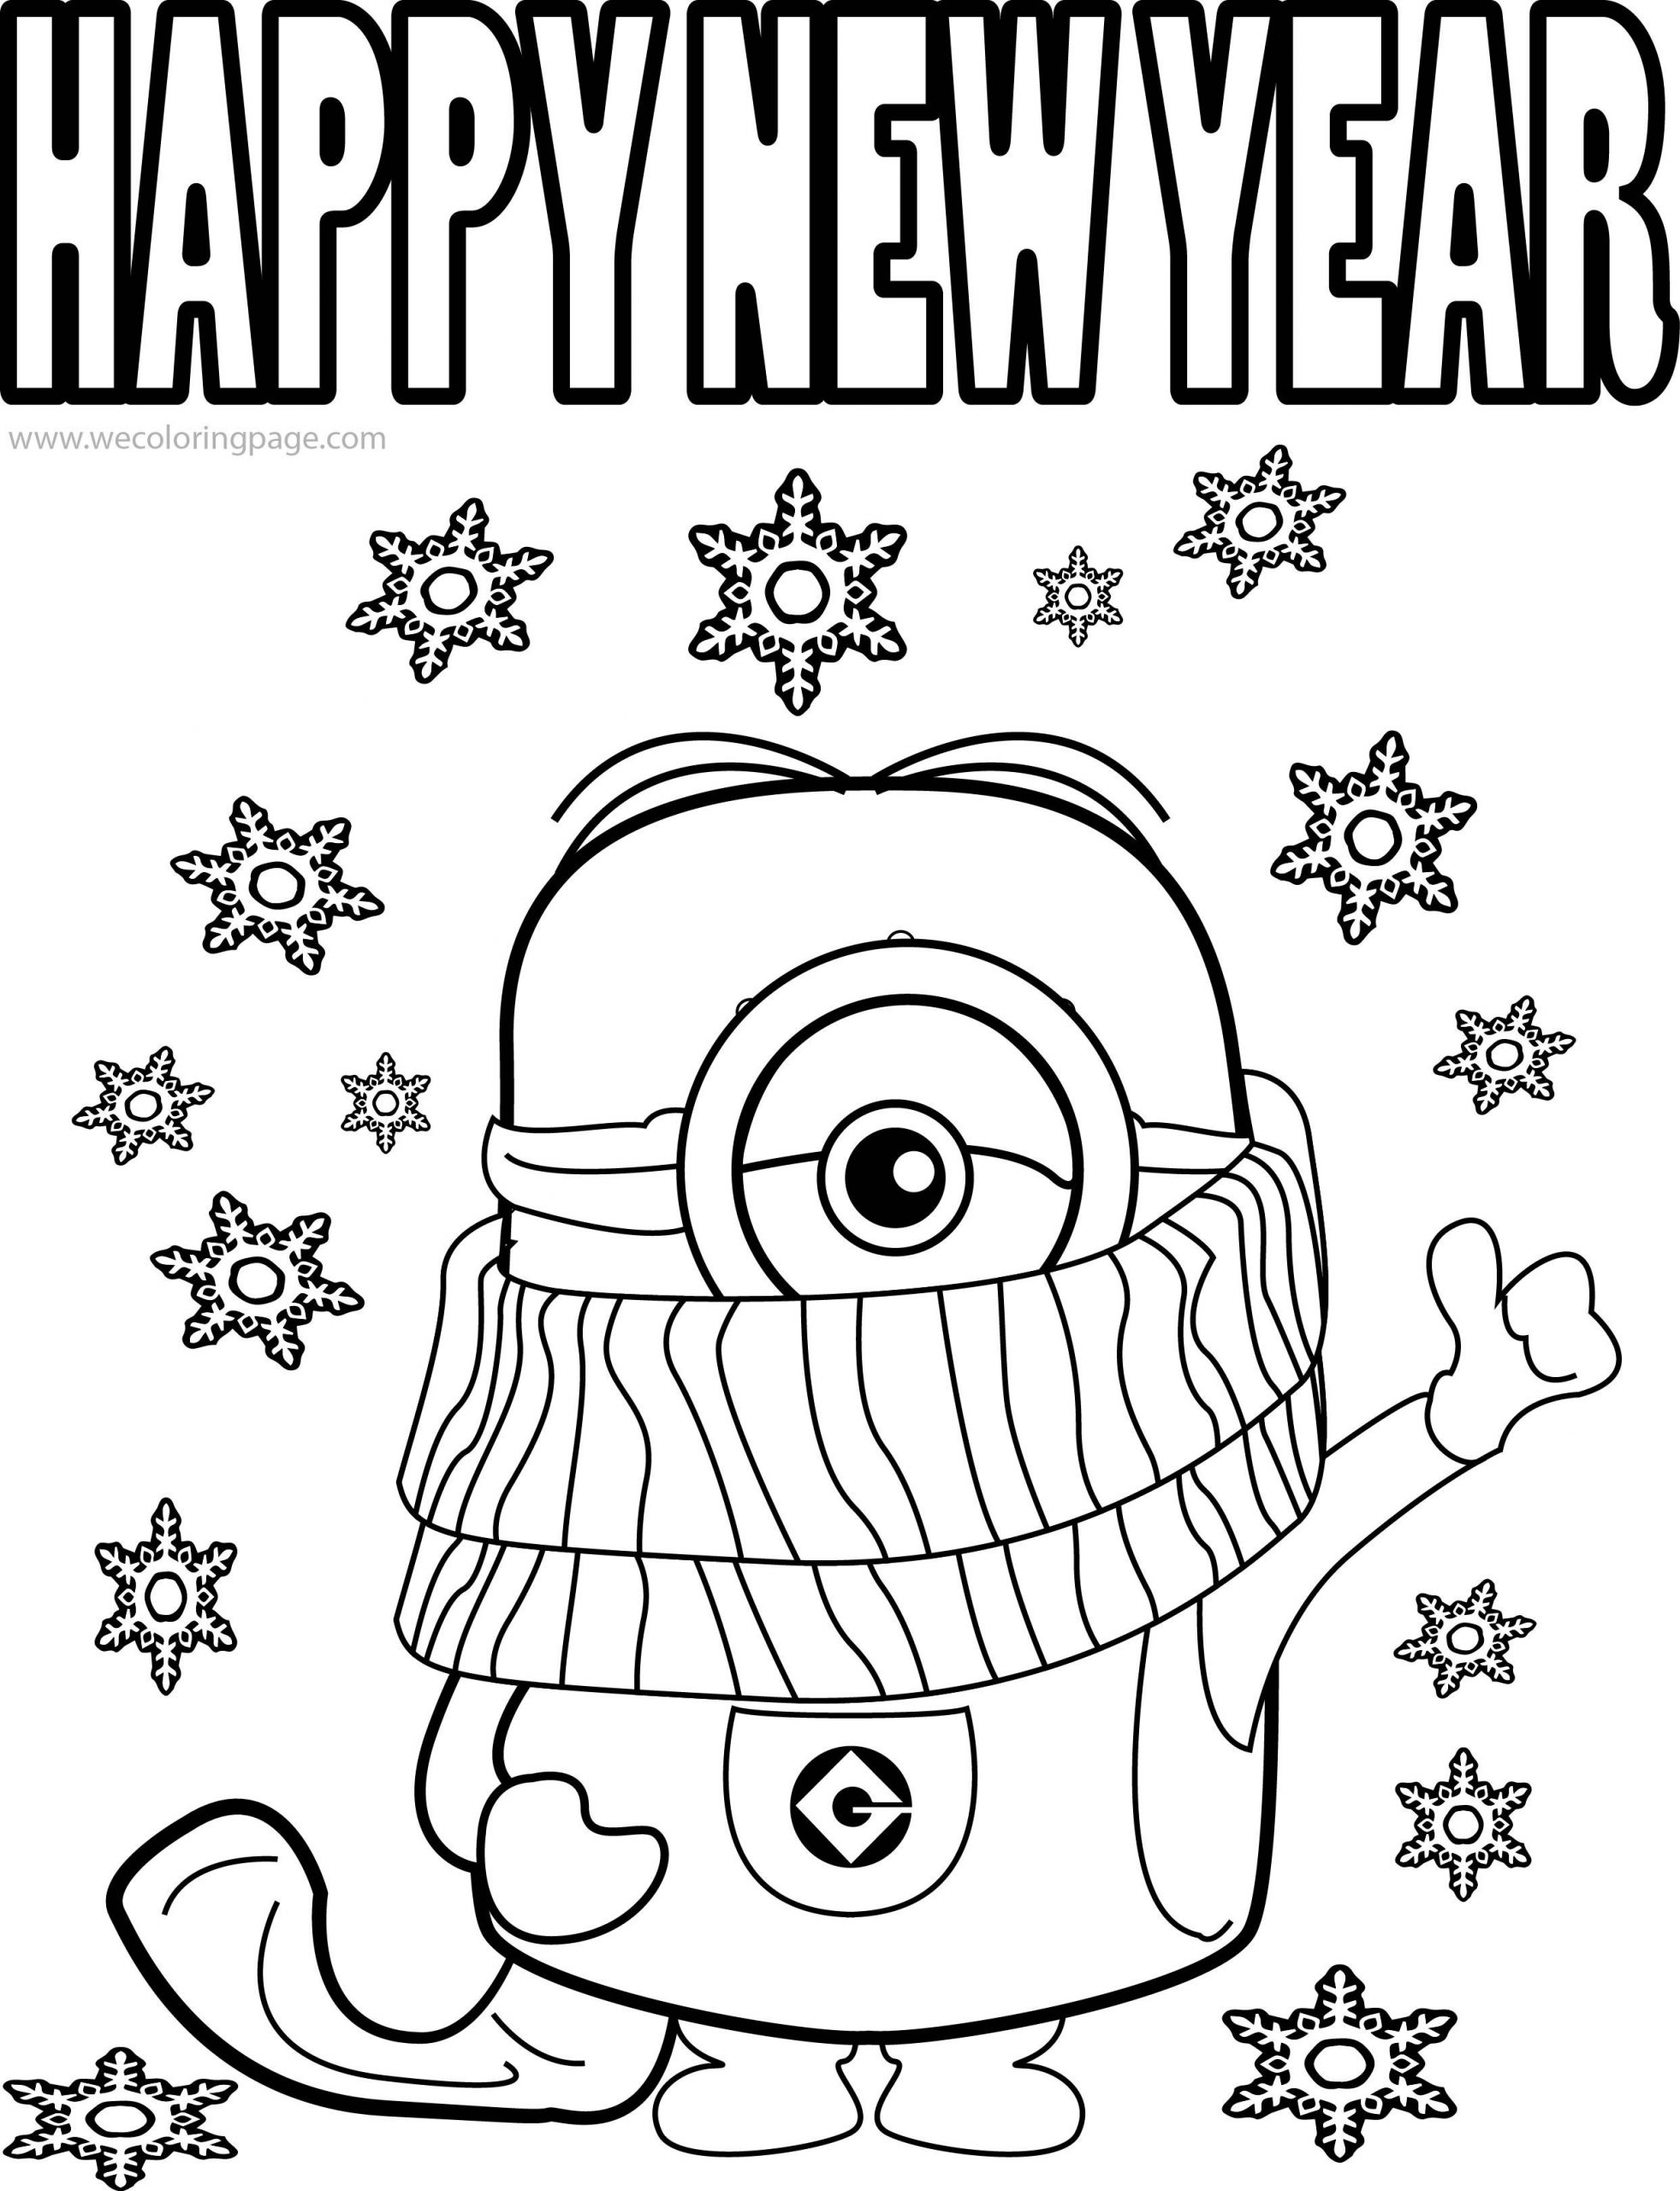 coloring pages 2020 tokyo 2020 olympics coloring pages coloring home coloring pages 2020